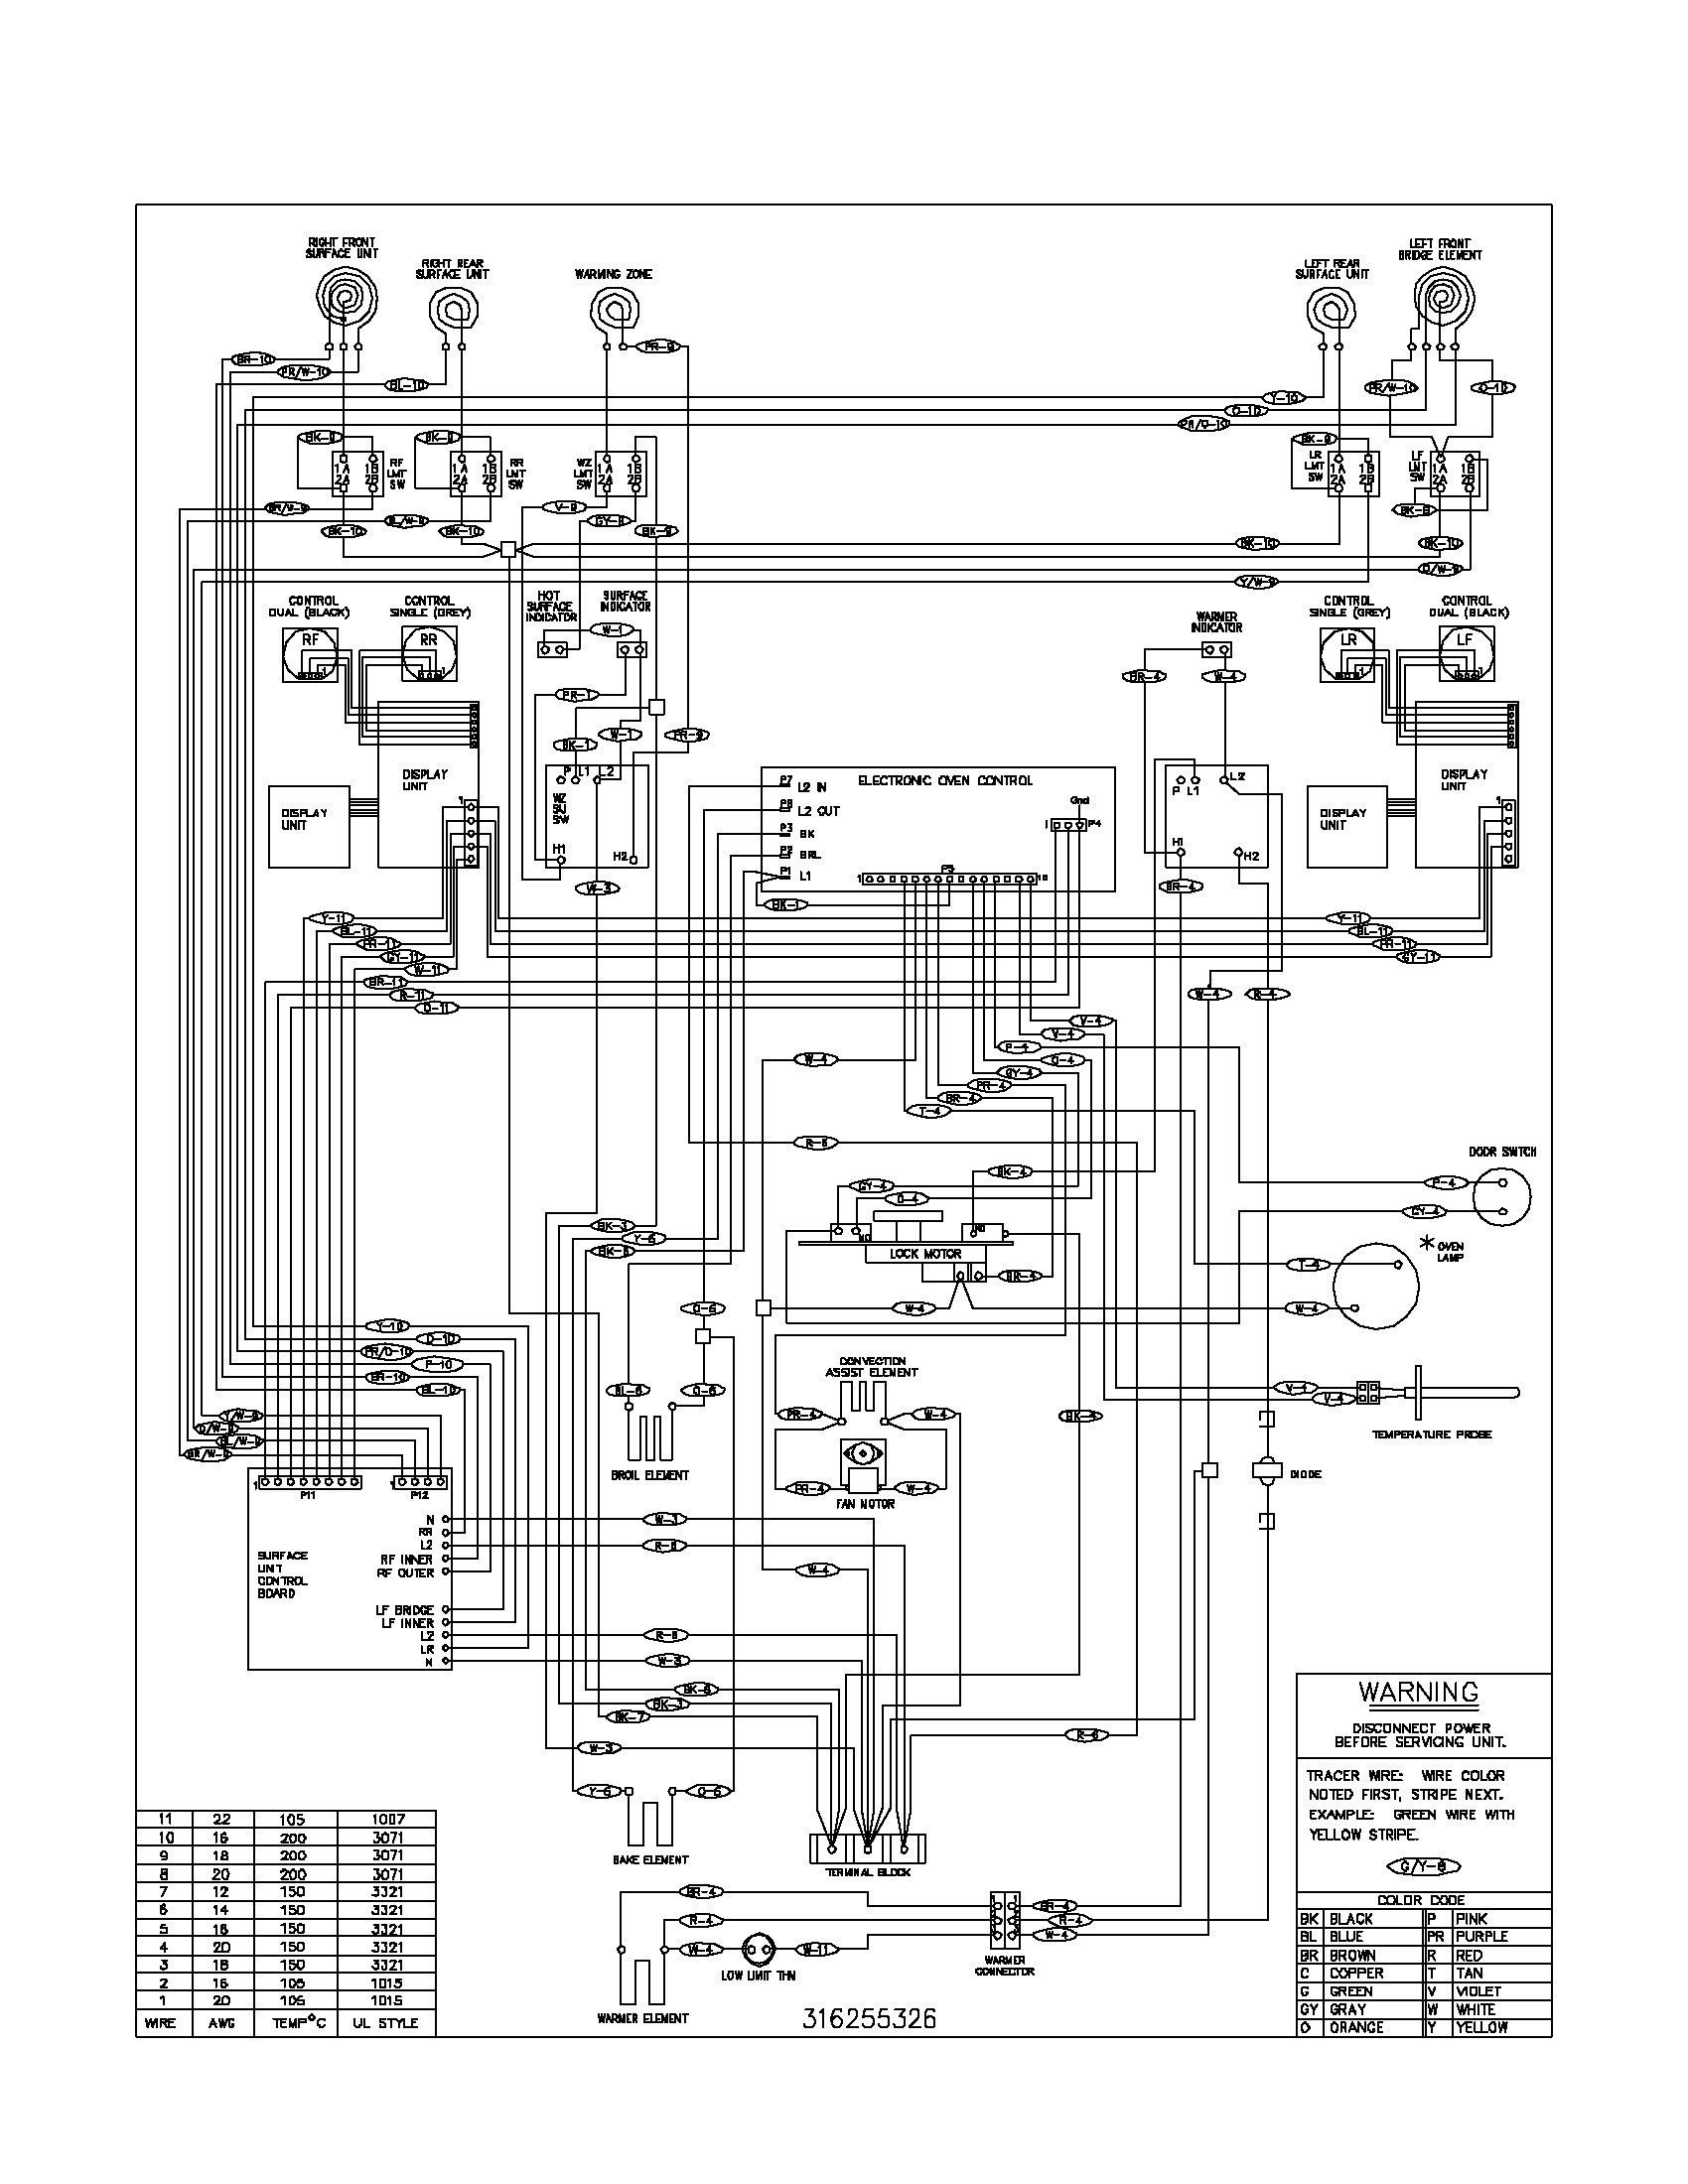 New Wiring Diagram For Intertherm Electric Furnace Diagram Diagramsample Diagramtemplate Wiringdiagram Diagramchar Electric Furnace Diagram Design Furnace